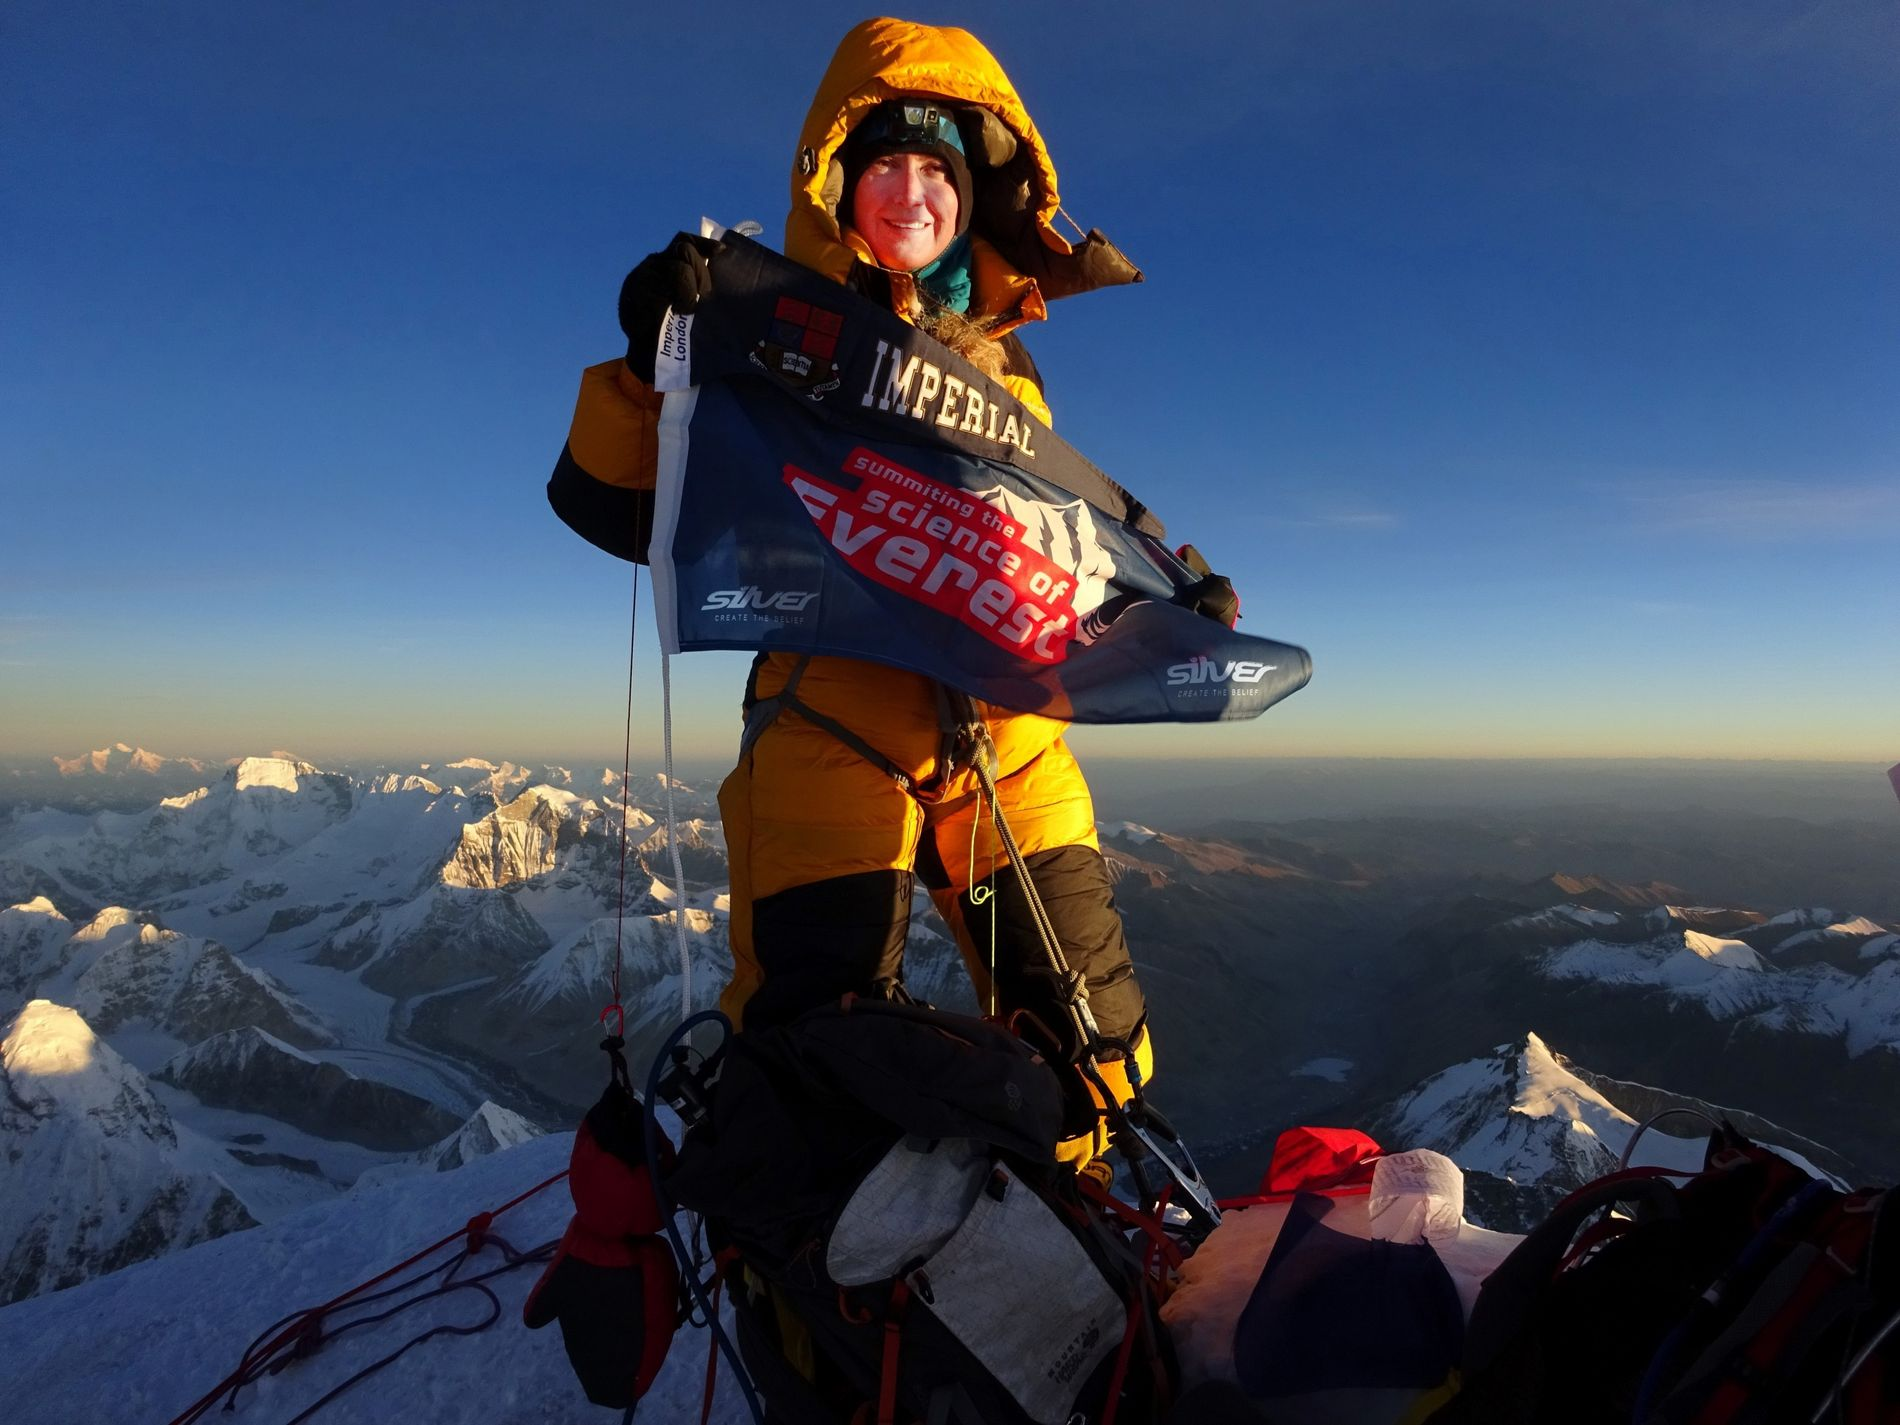 """""""In general, both physics and mountaineering andadventuring are male-dominated. But I think the situation is changing."""" Melanie Windridge on the summit of Everest in 2018."""